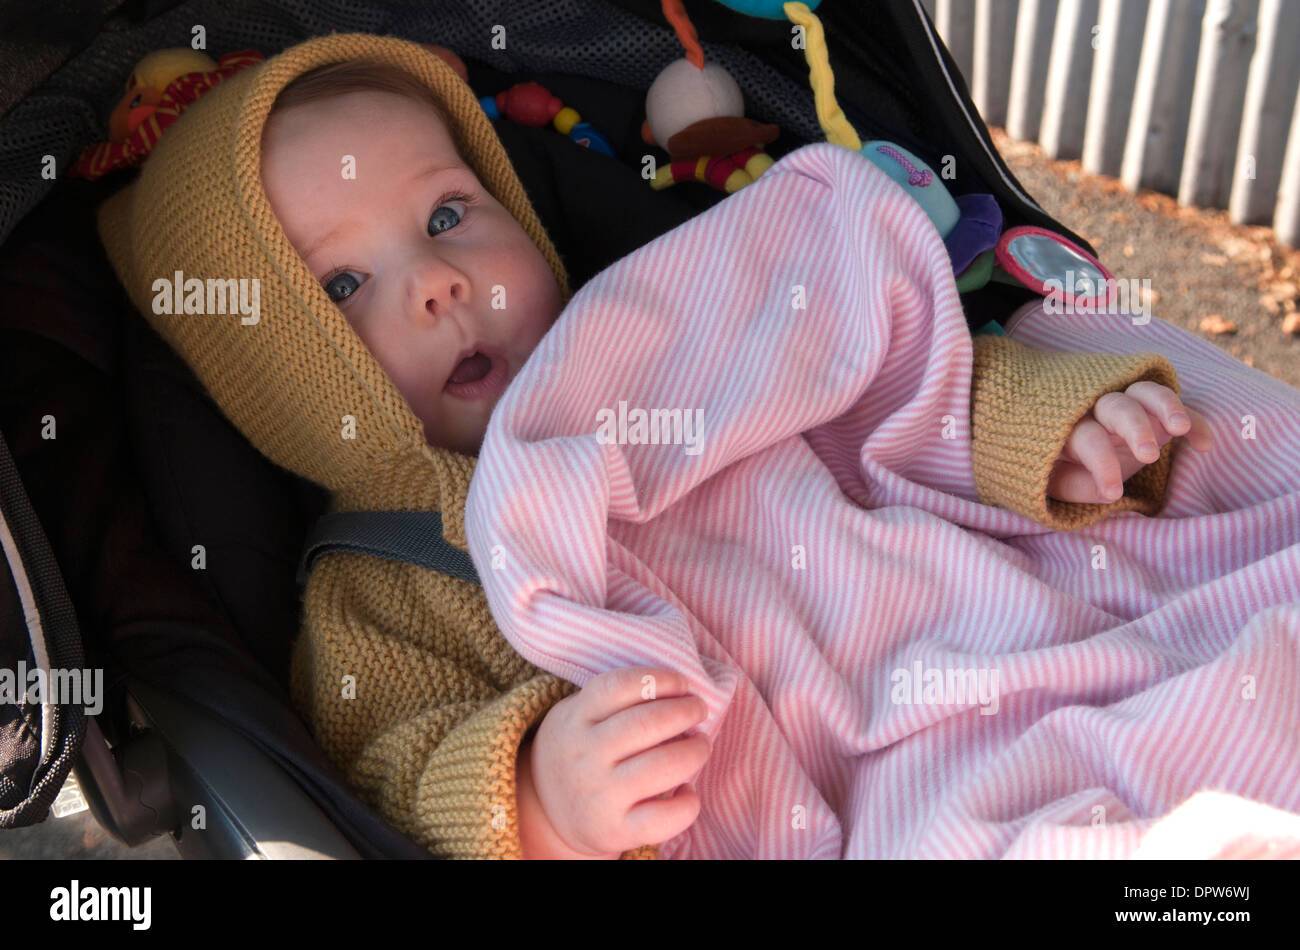 baby girl sitting in her pram looking at the camera and making faces